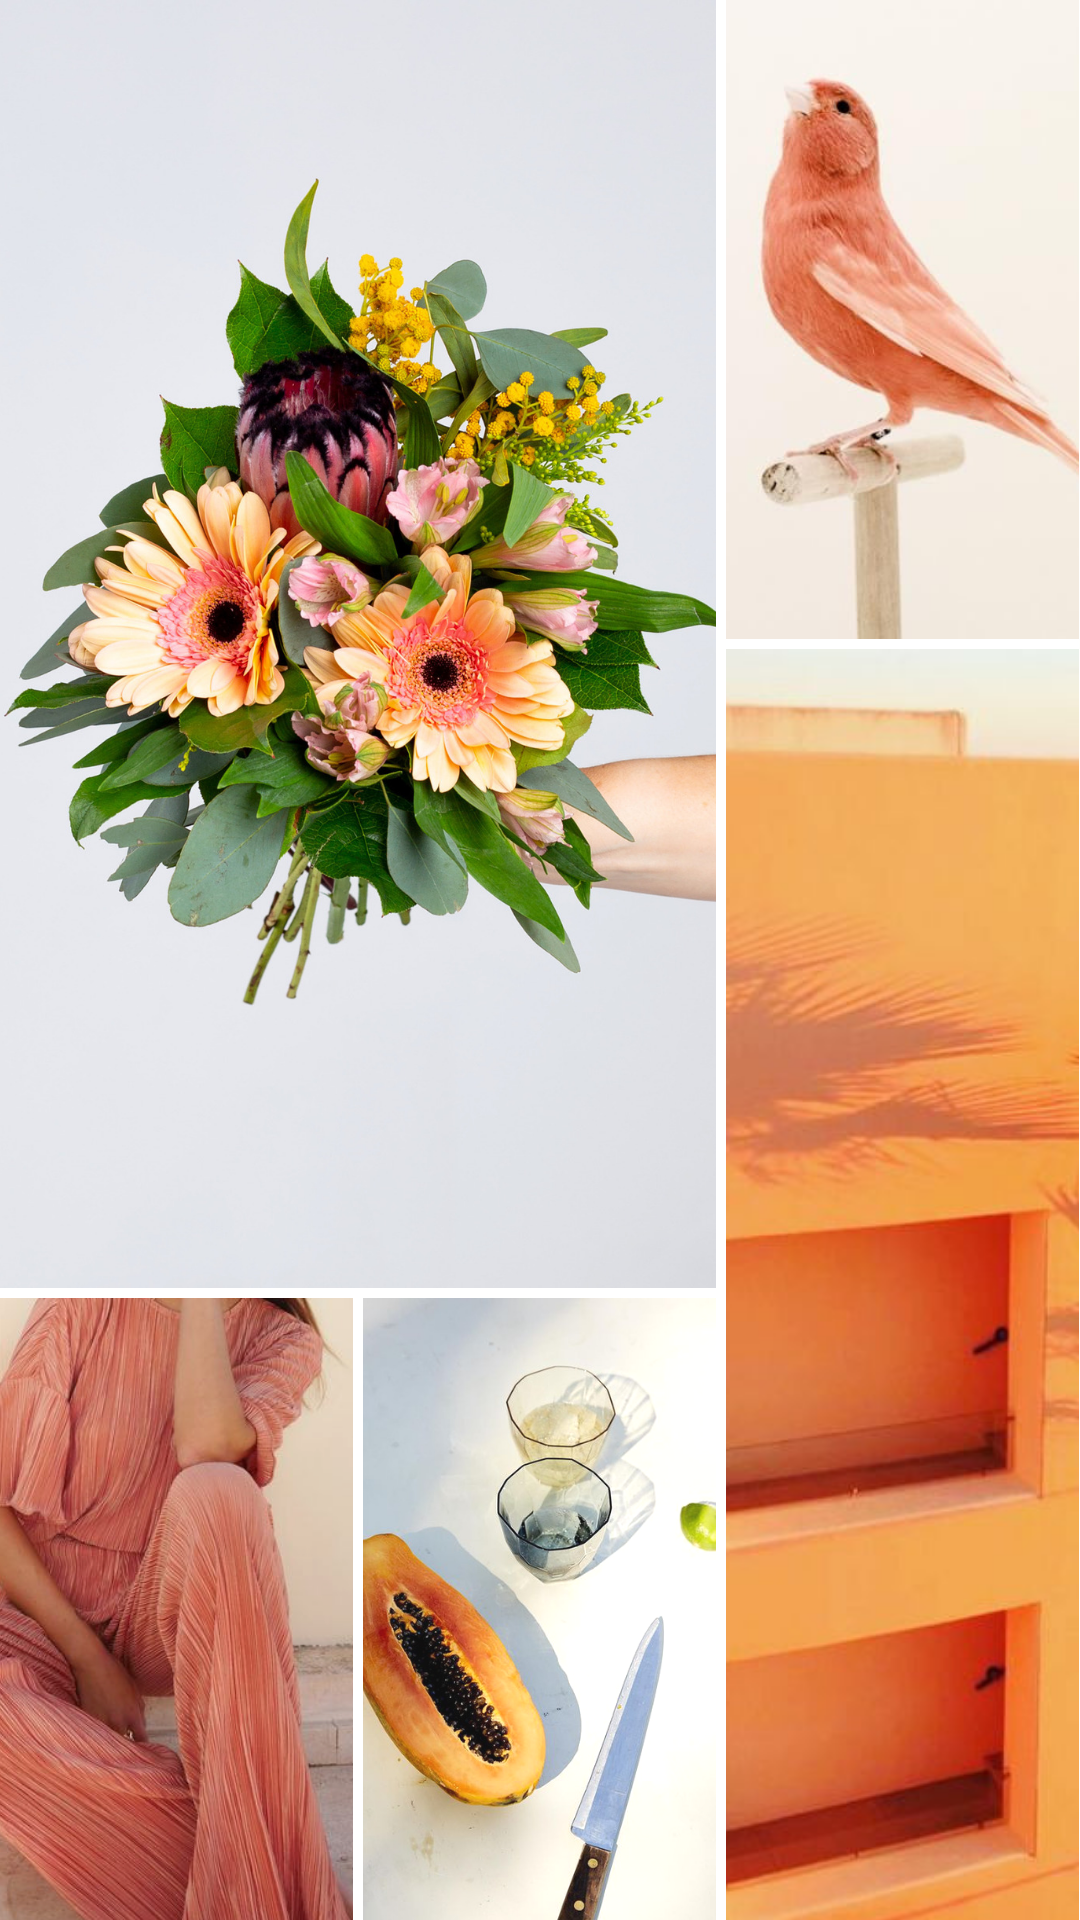 Buy things that make you happy. - Start with flowers.